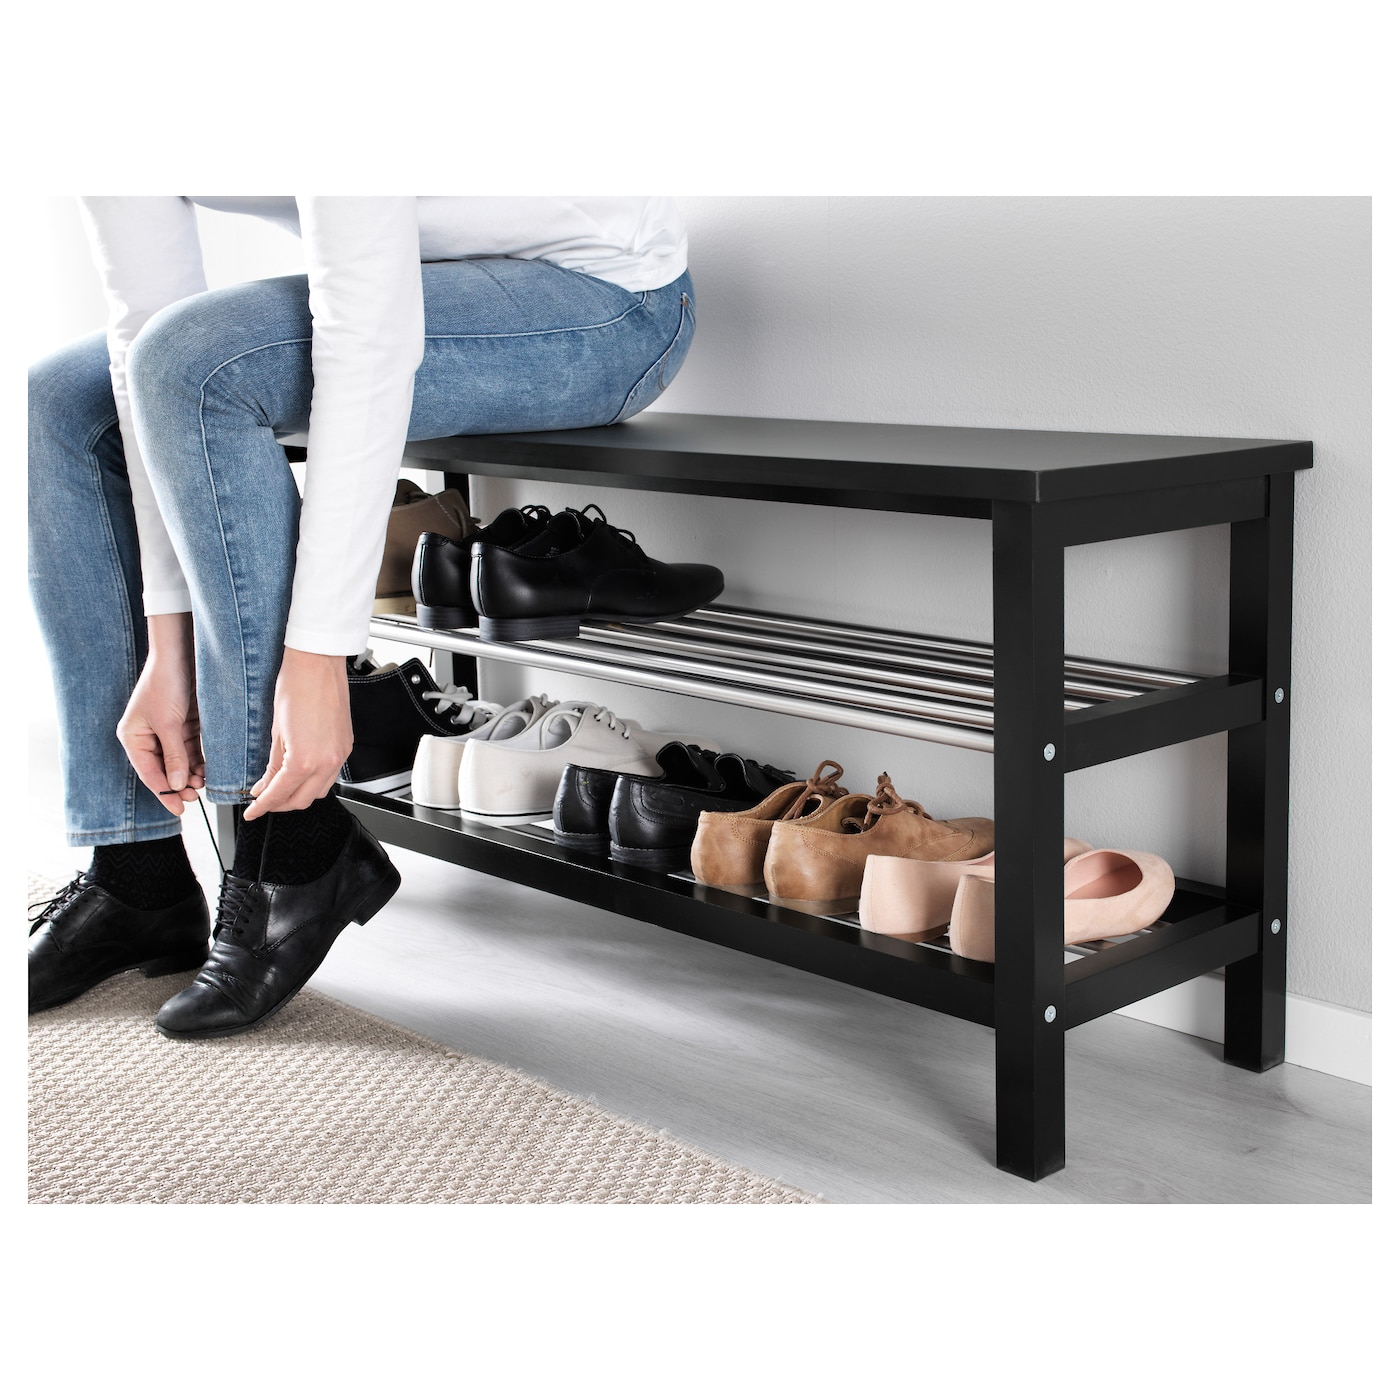 tjusig banc avec rangement chaussures noir 108 x 50 cm ikea. Black Bedroom Furniture Sets. Home Design Ideas